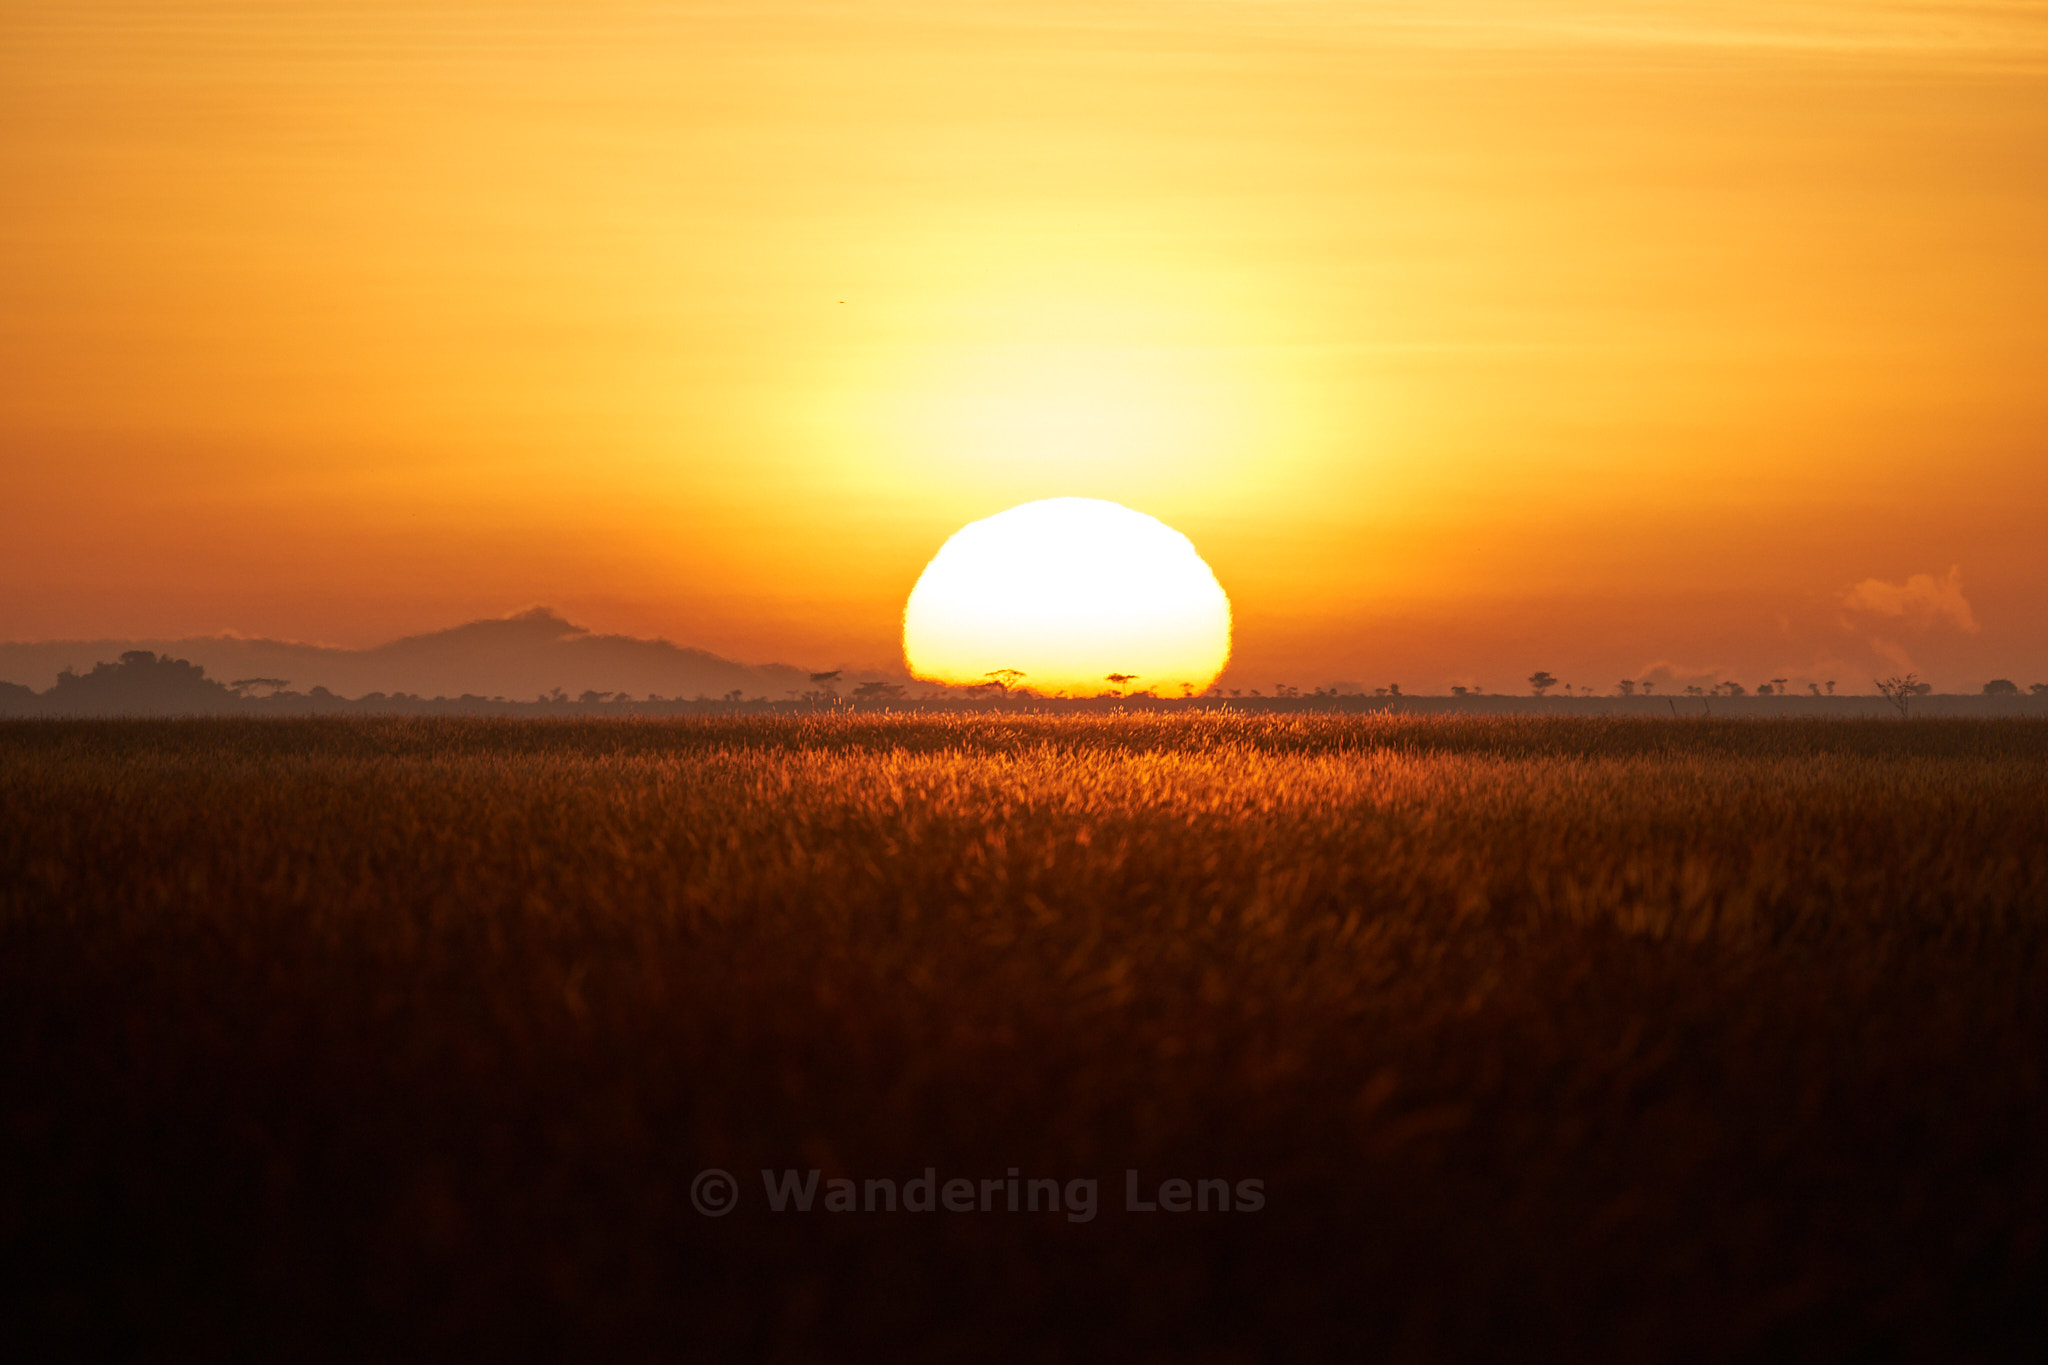 Sunrise over the Serengeti, the endless plain